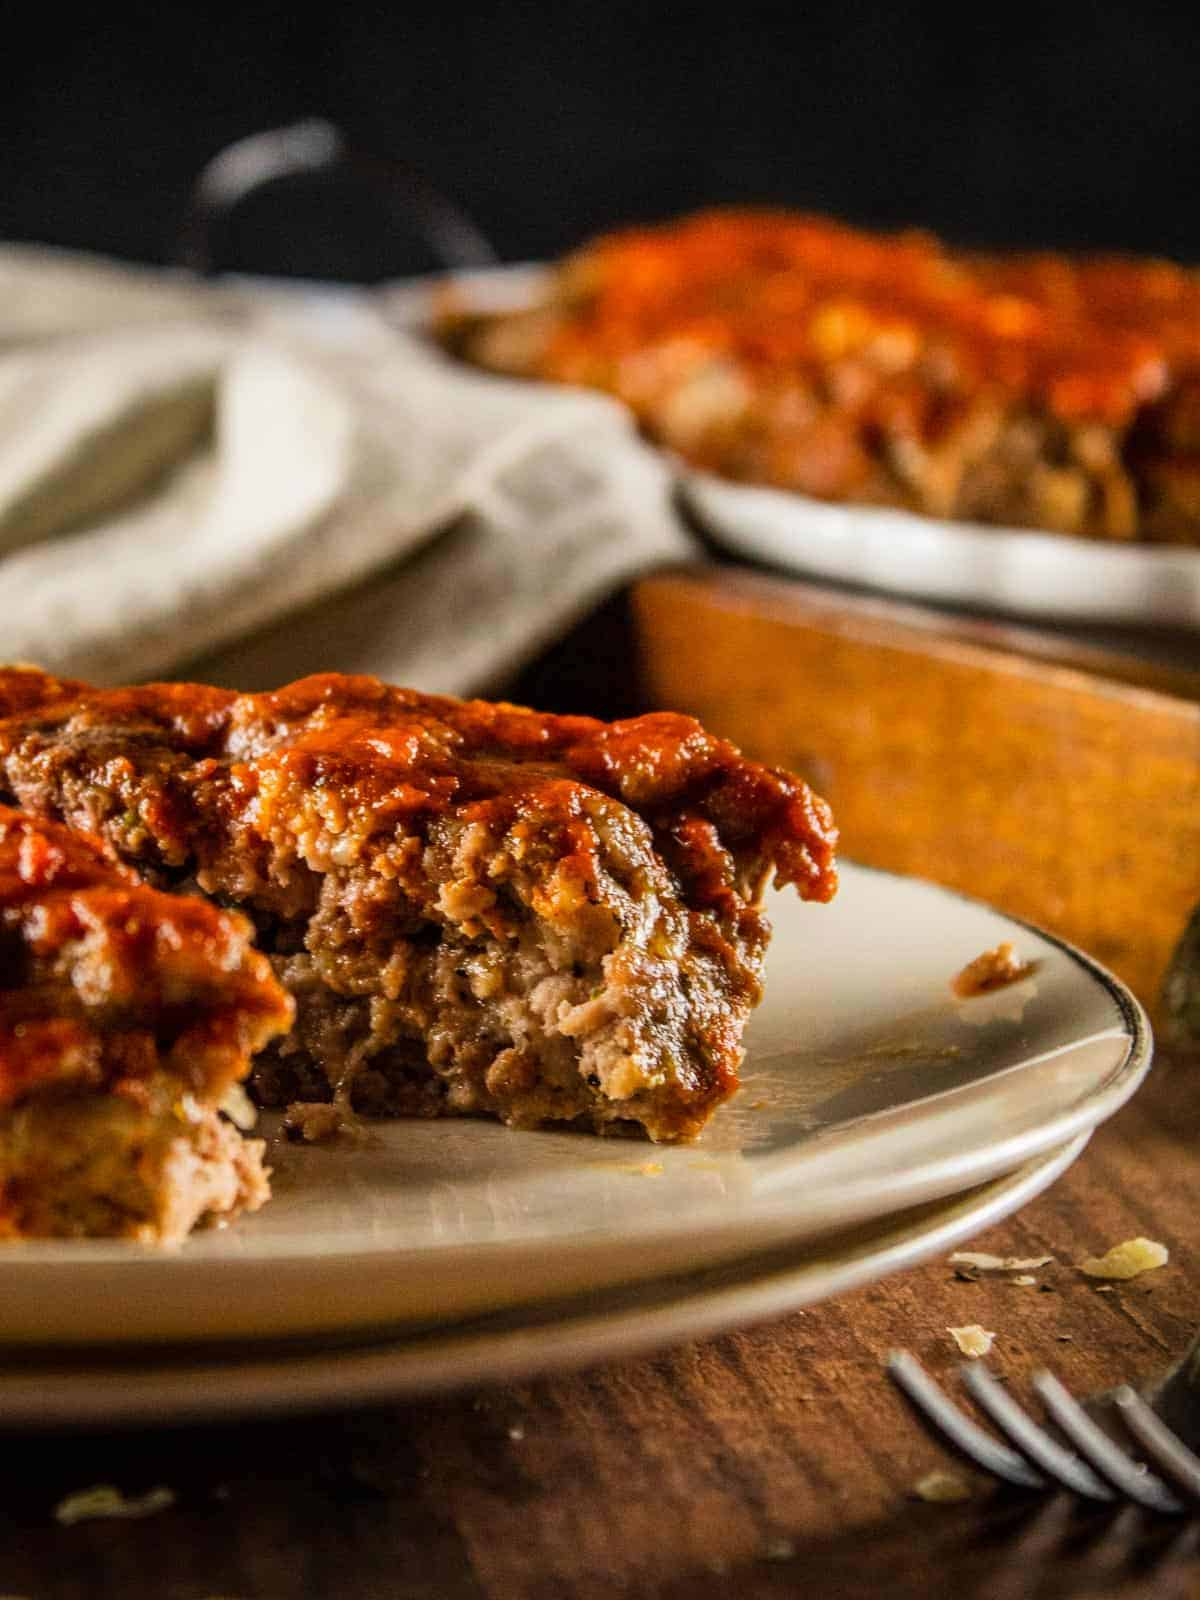 two slices of meatloaf on a plate